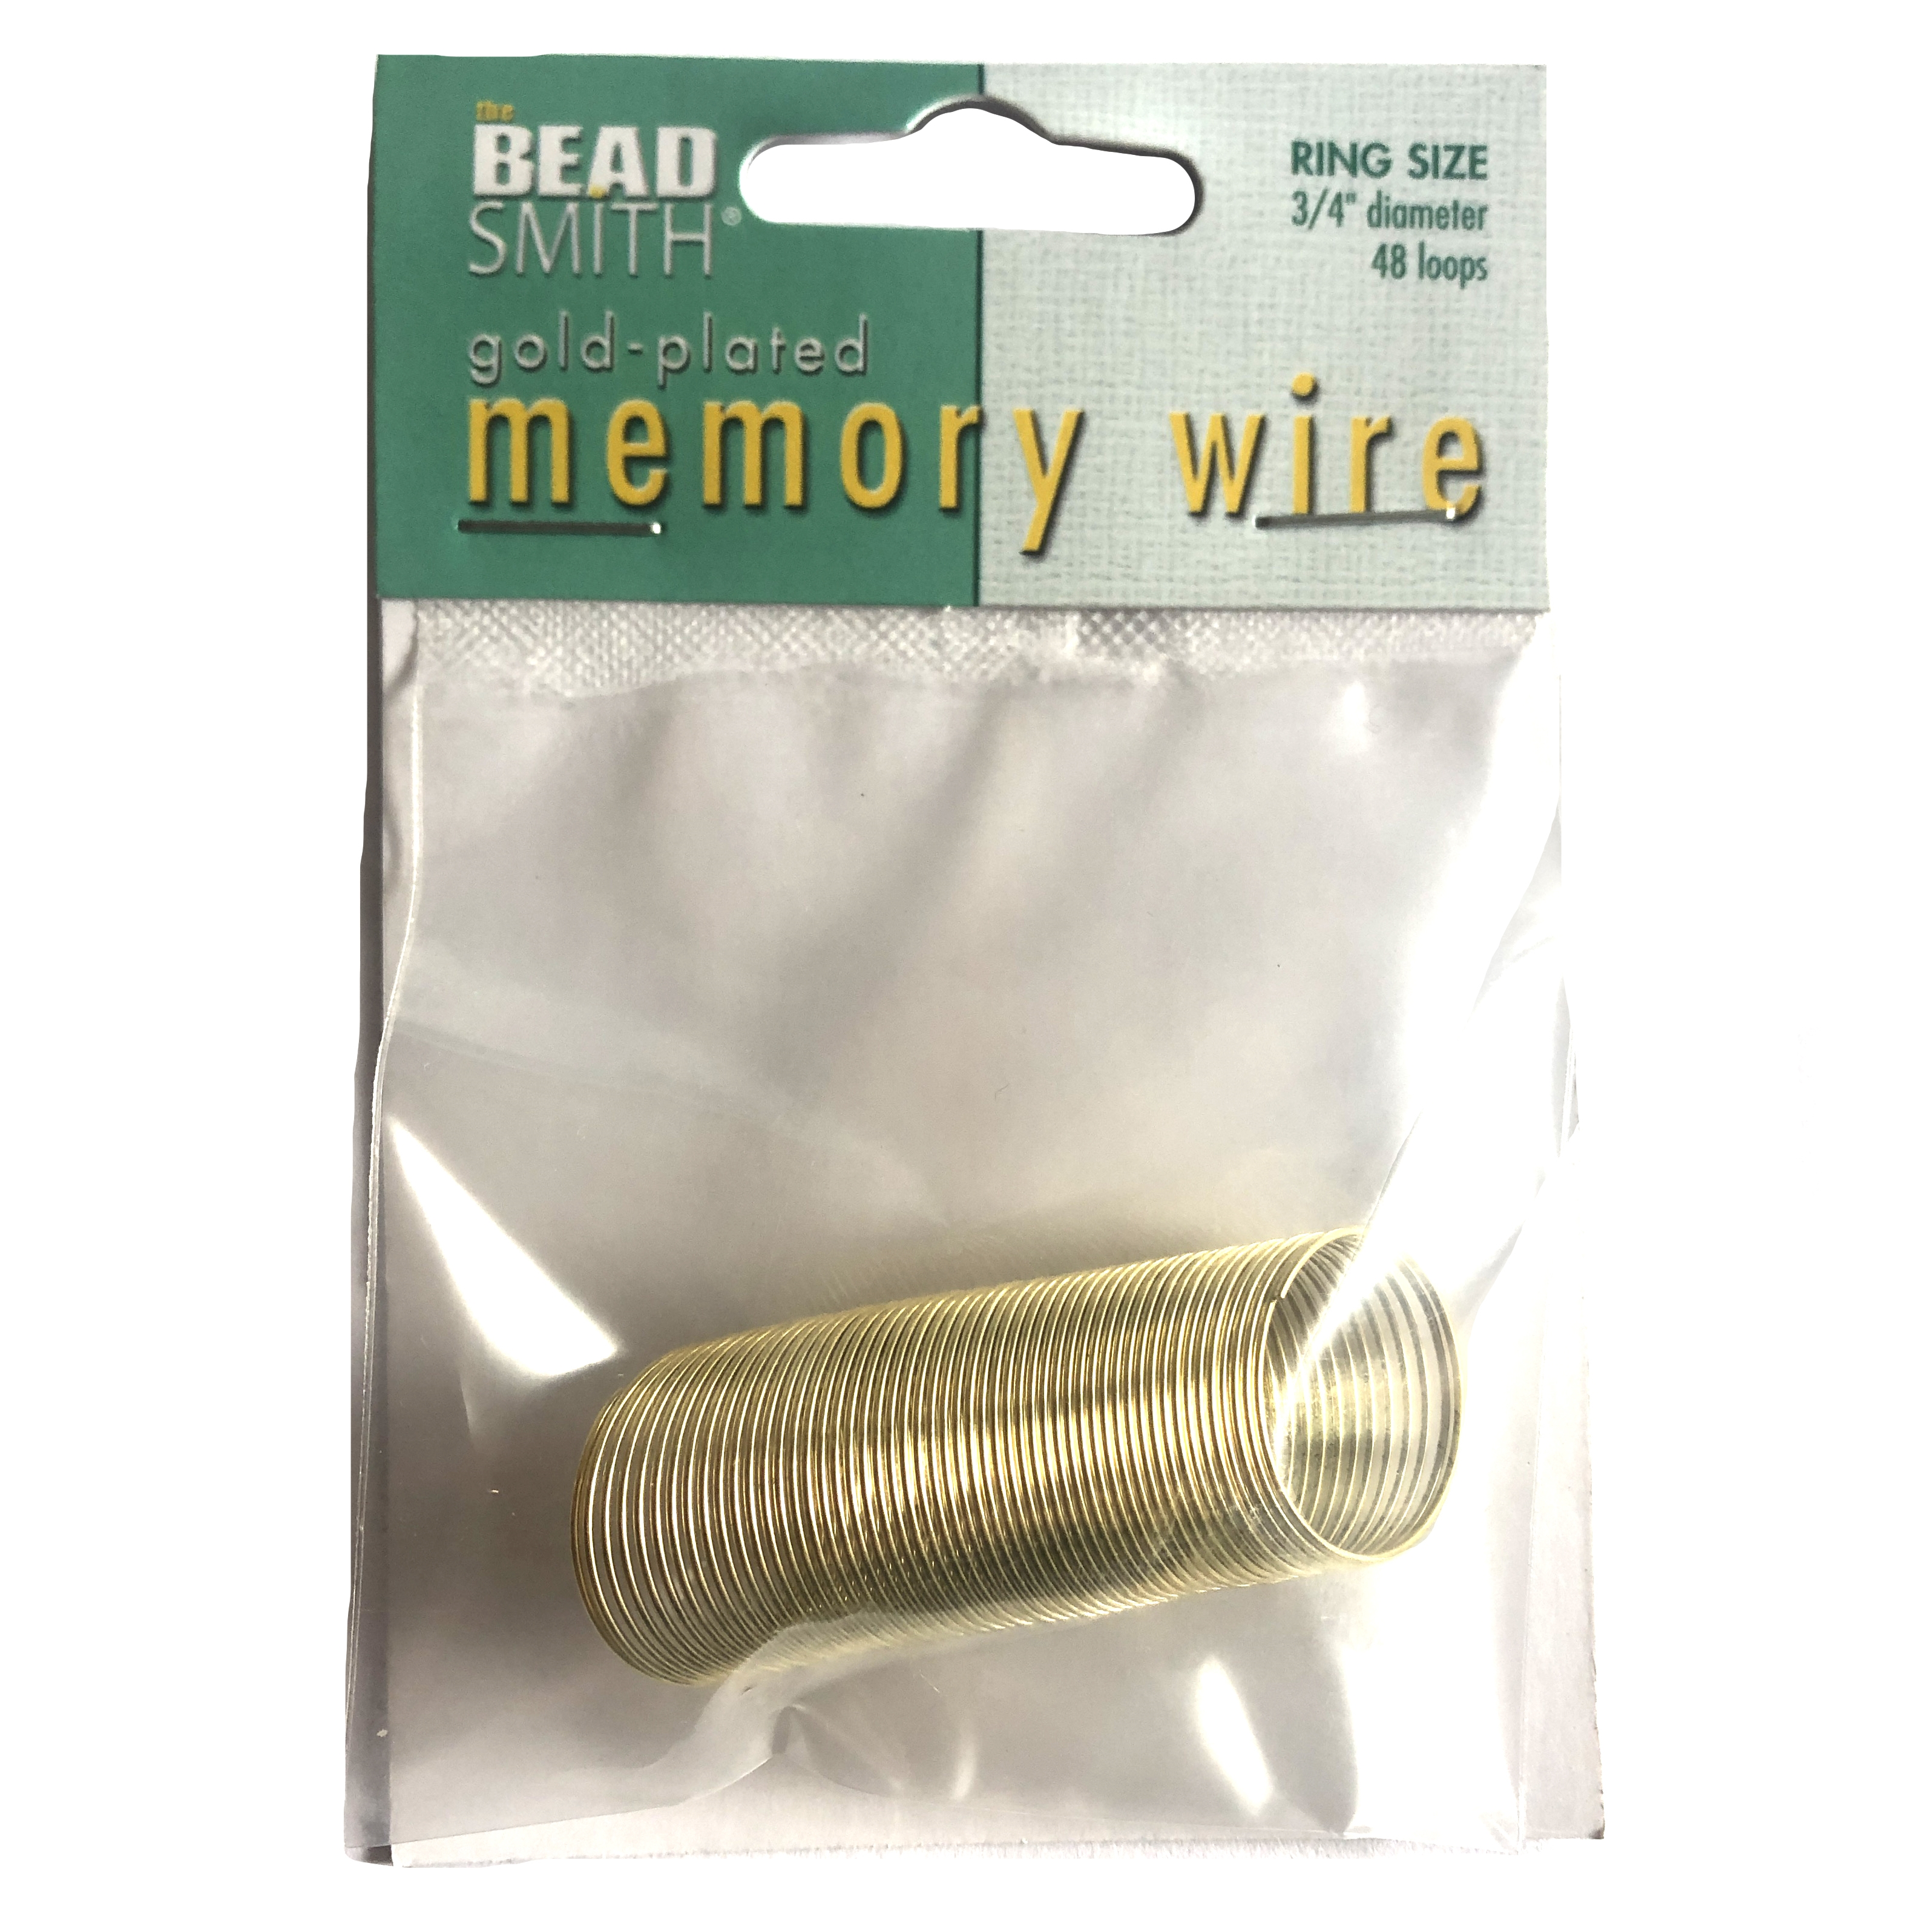 Round Memory Wire, Gold Plate, 0854, 1.75 inch, gold ring wire, jewelry wire, craft wire, jewelry making supplies, gold plated stainless steel memory wire, 1 ounce, round wire